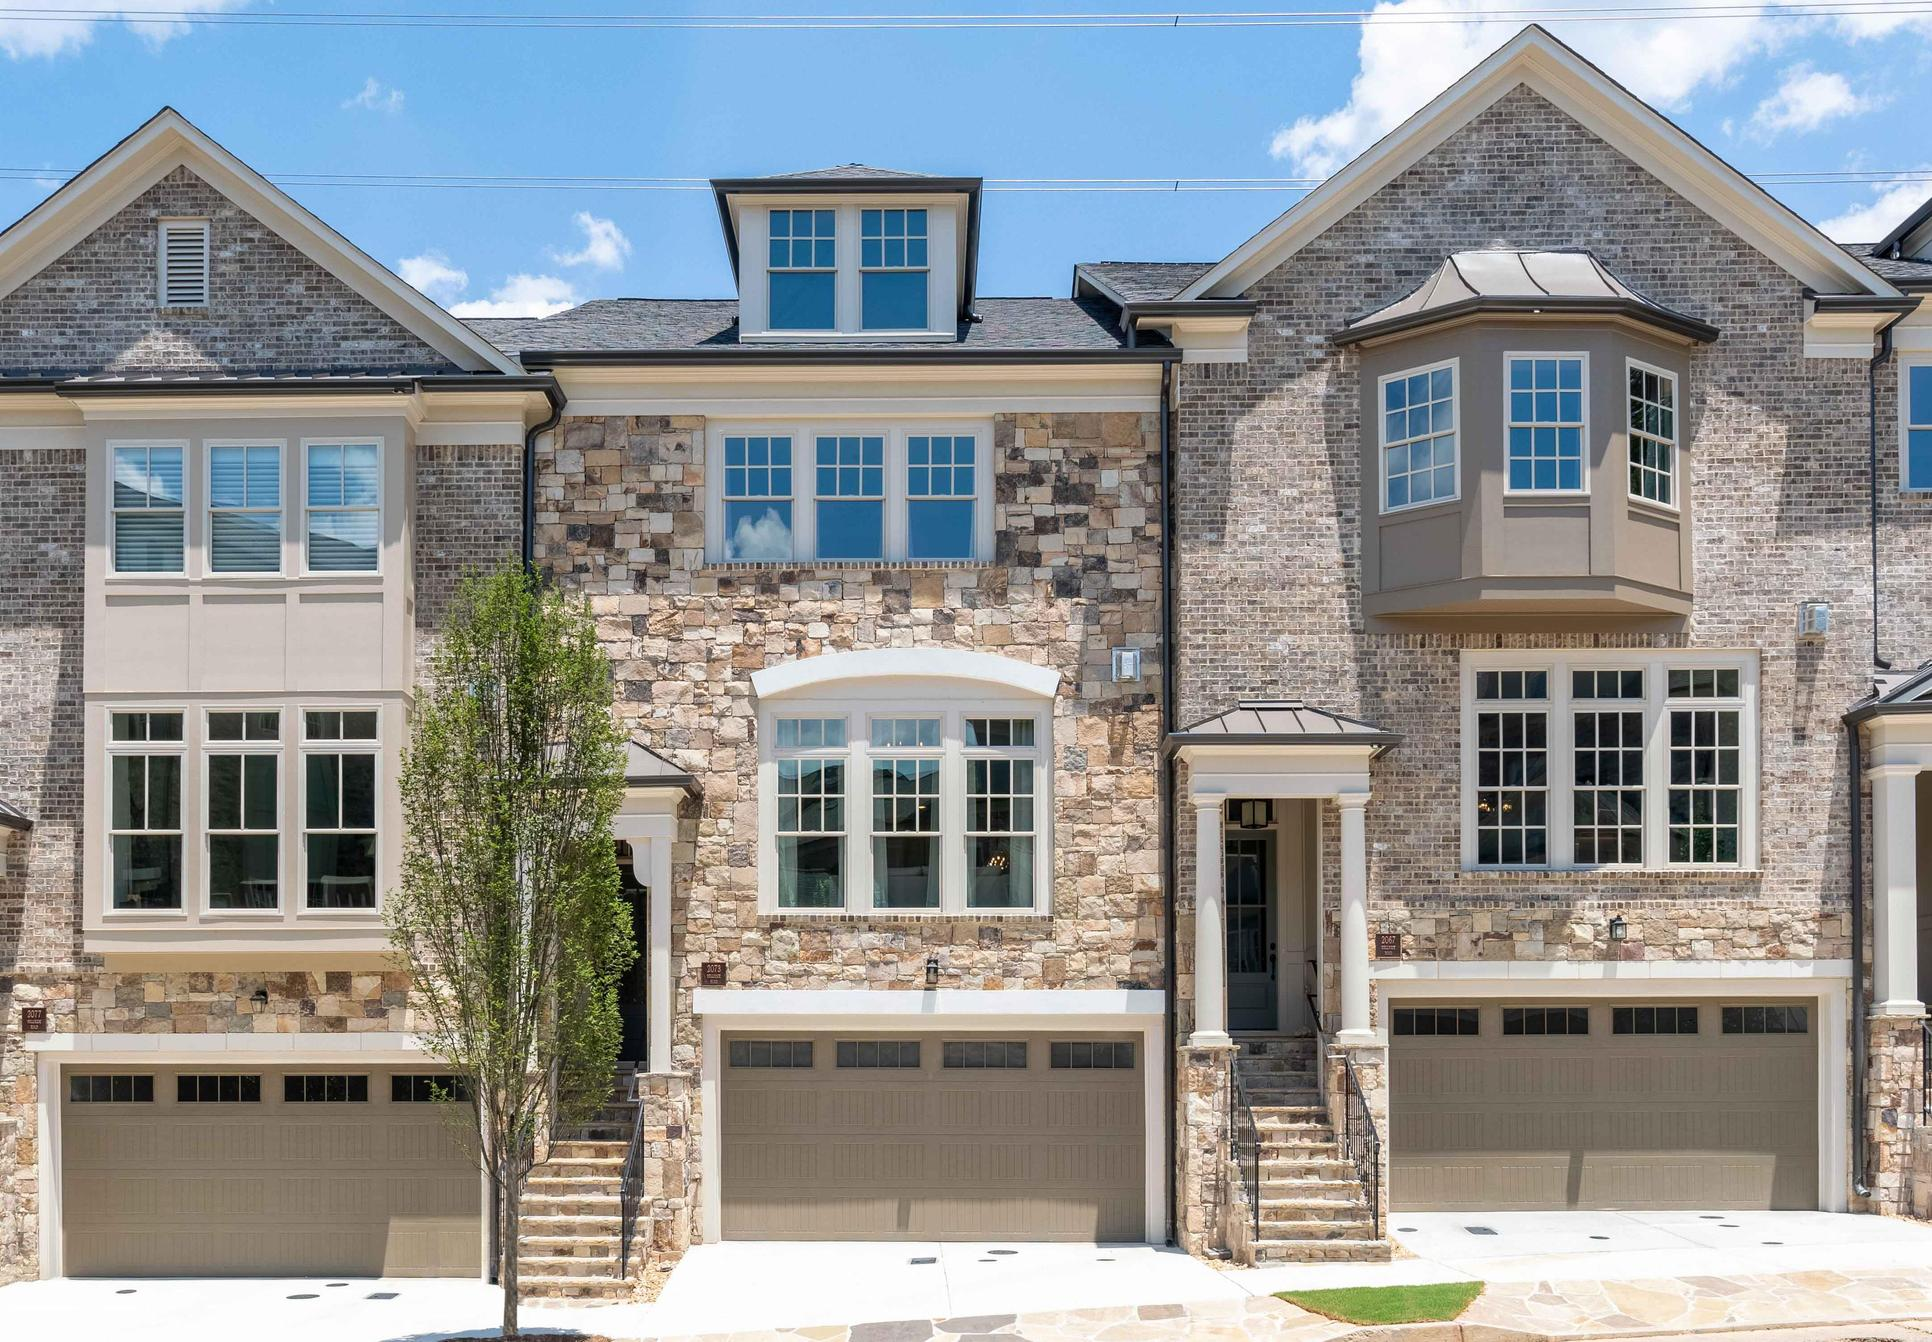 The Briarcliff Townhomes